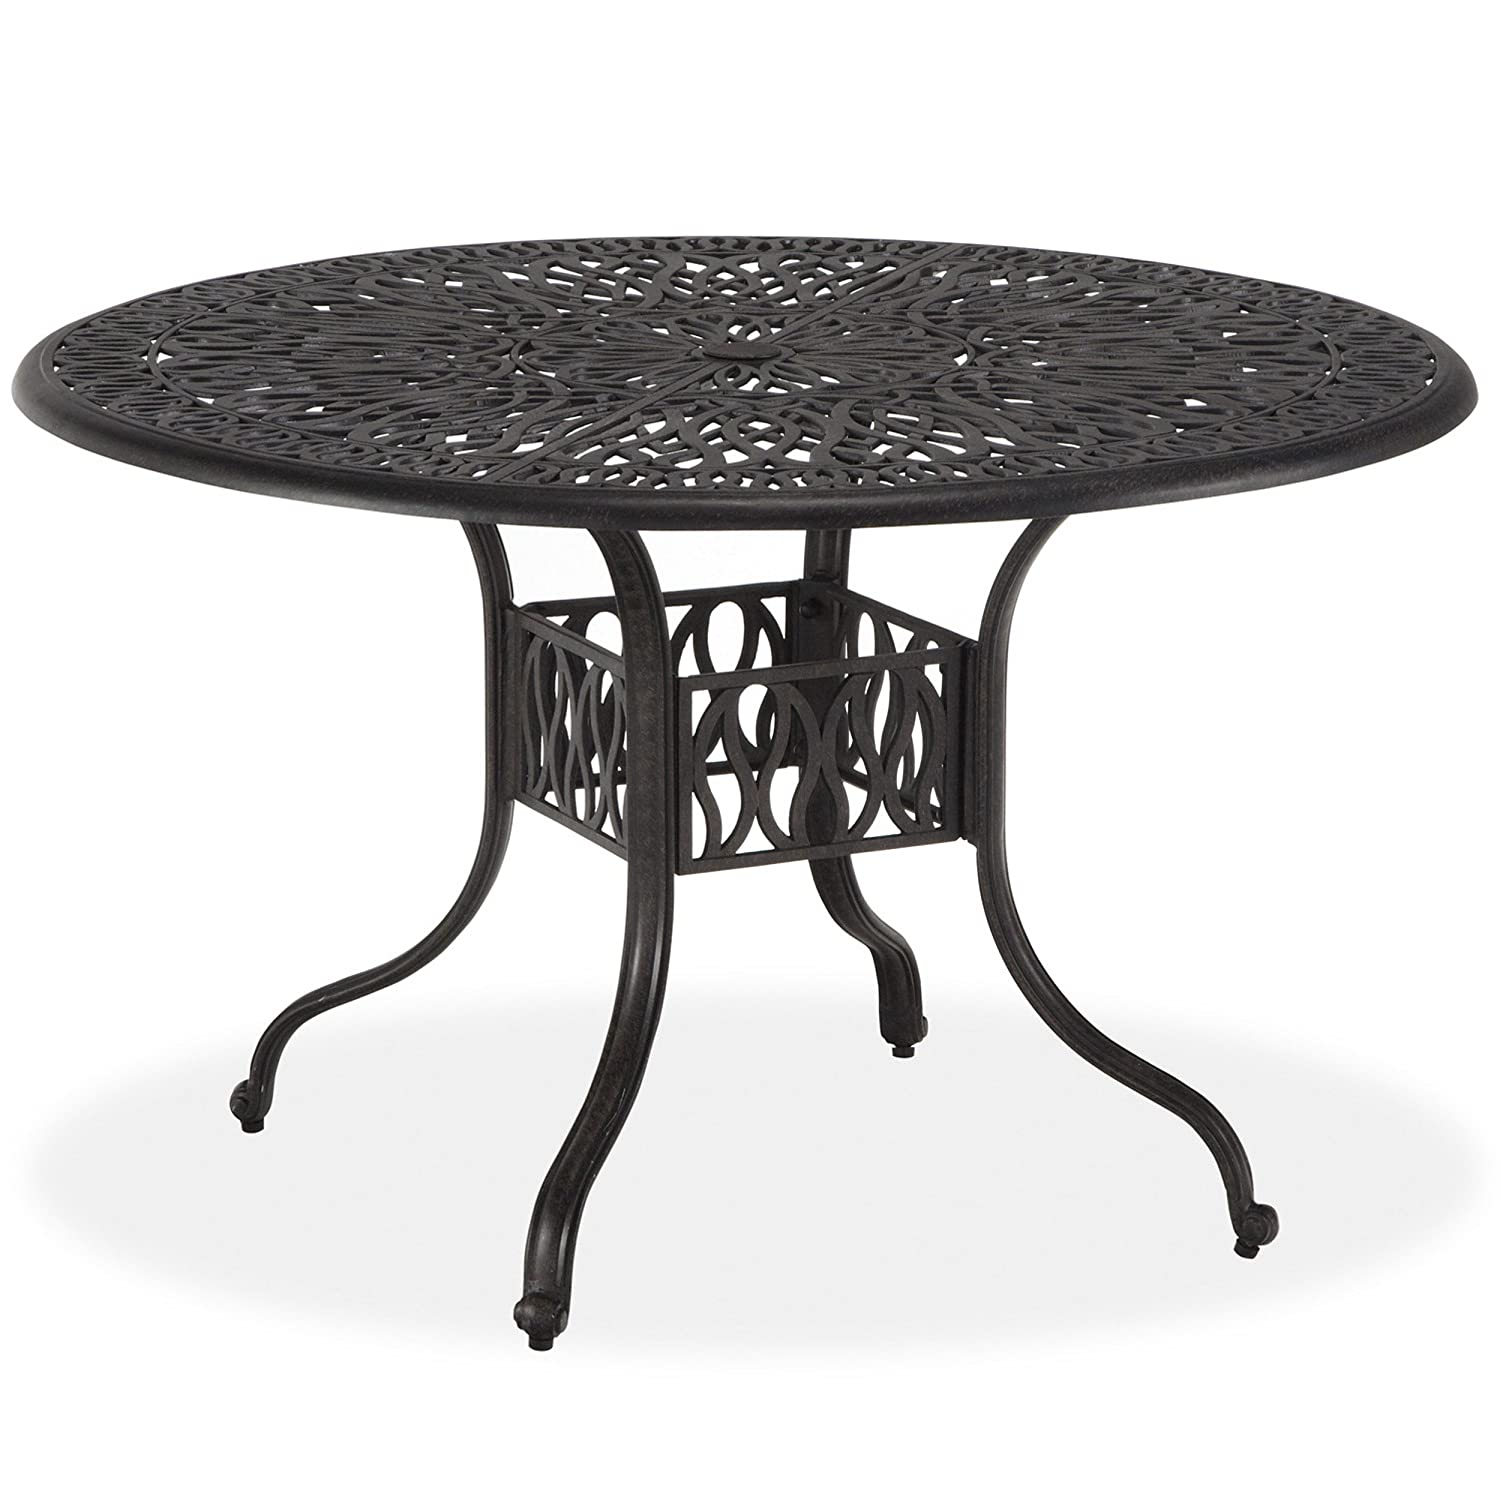 Amazon.com : Home Styles Floral Blossom Round Dining Table, 42 ...